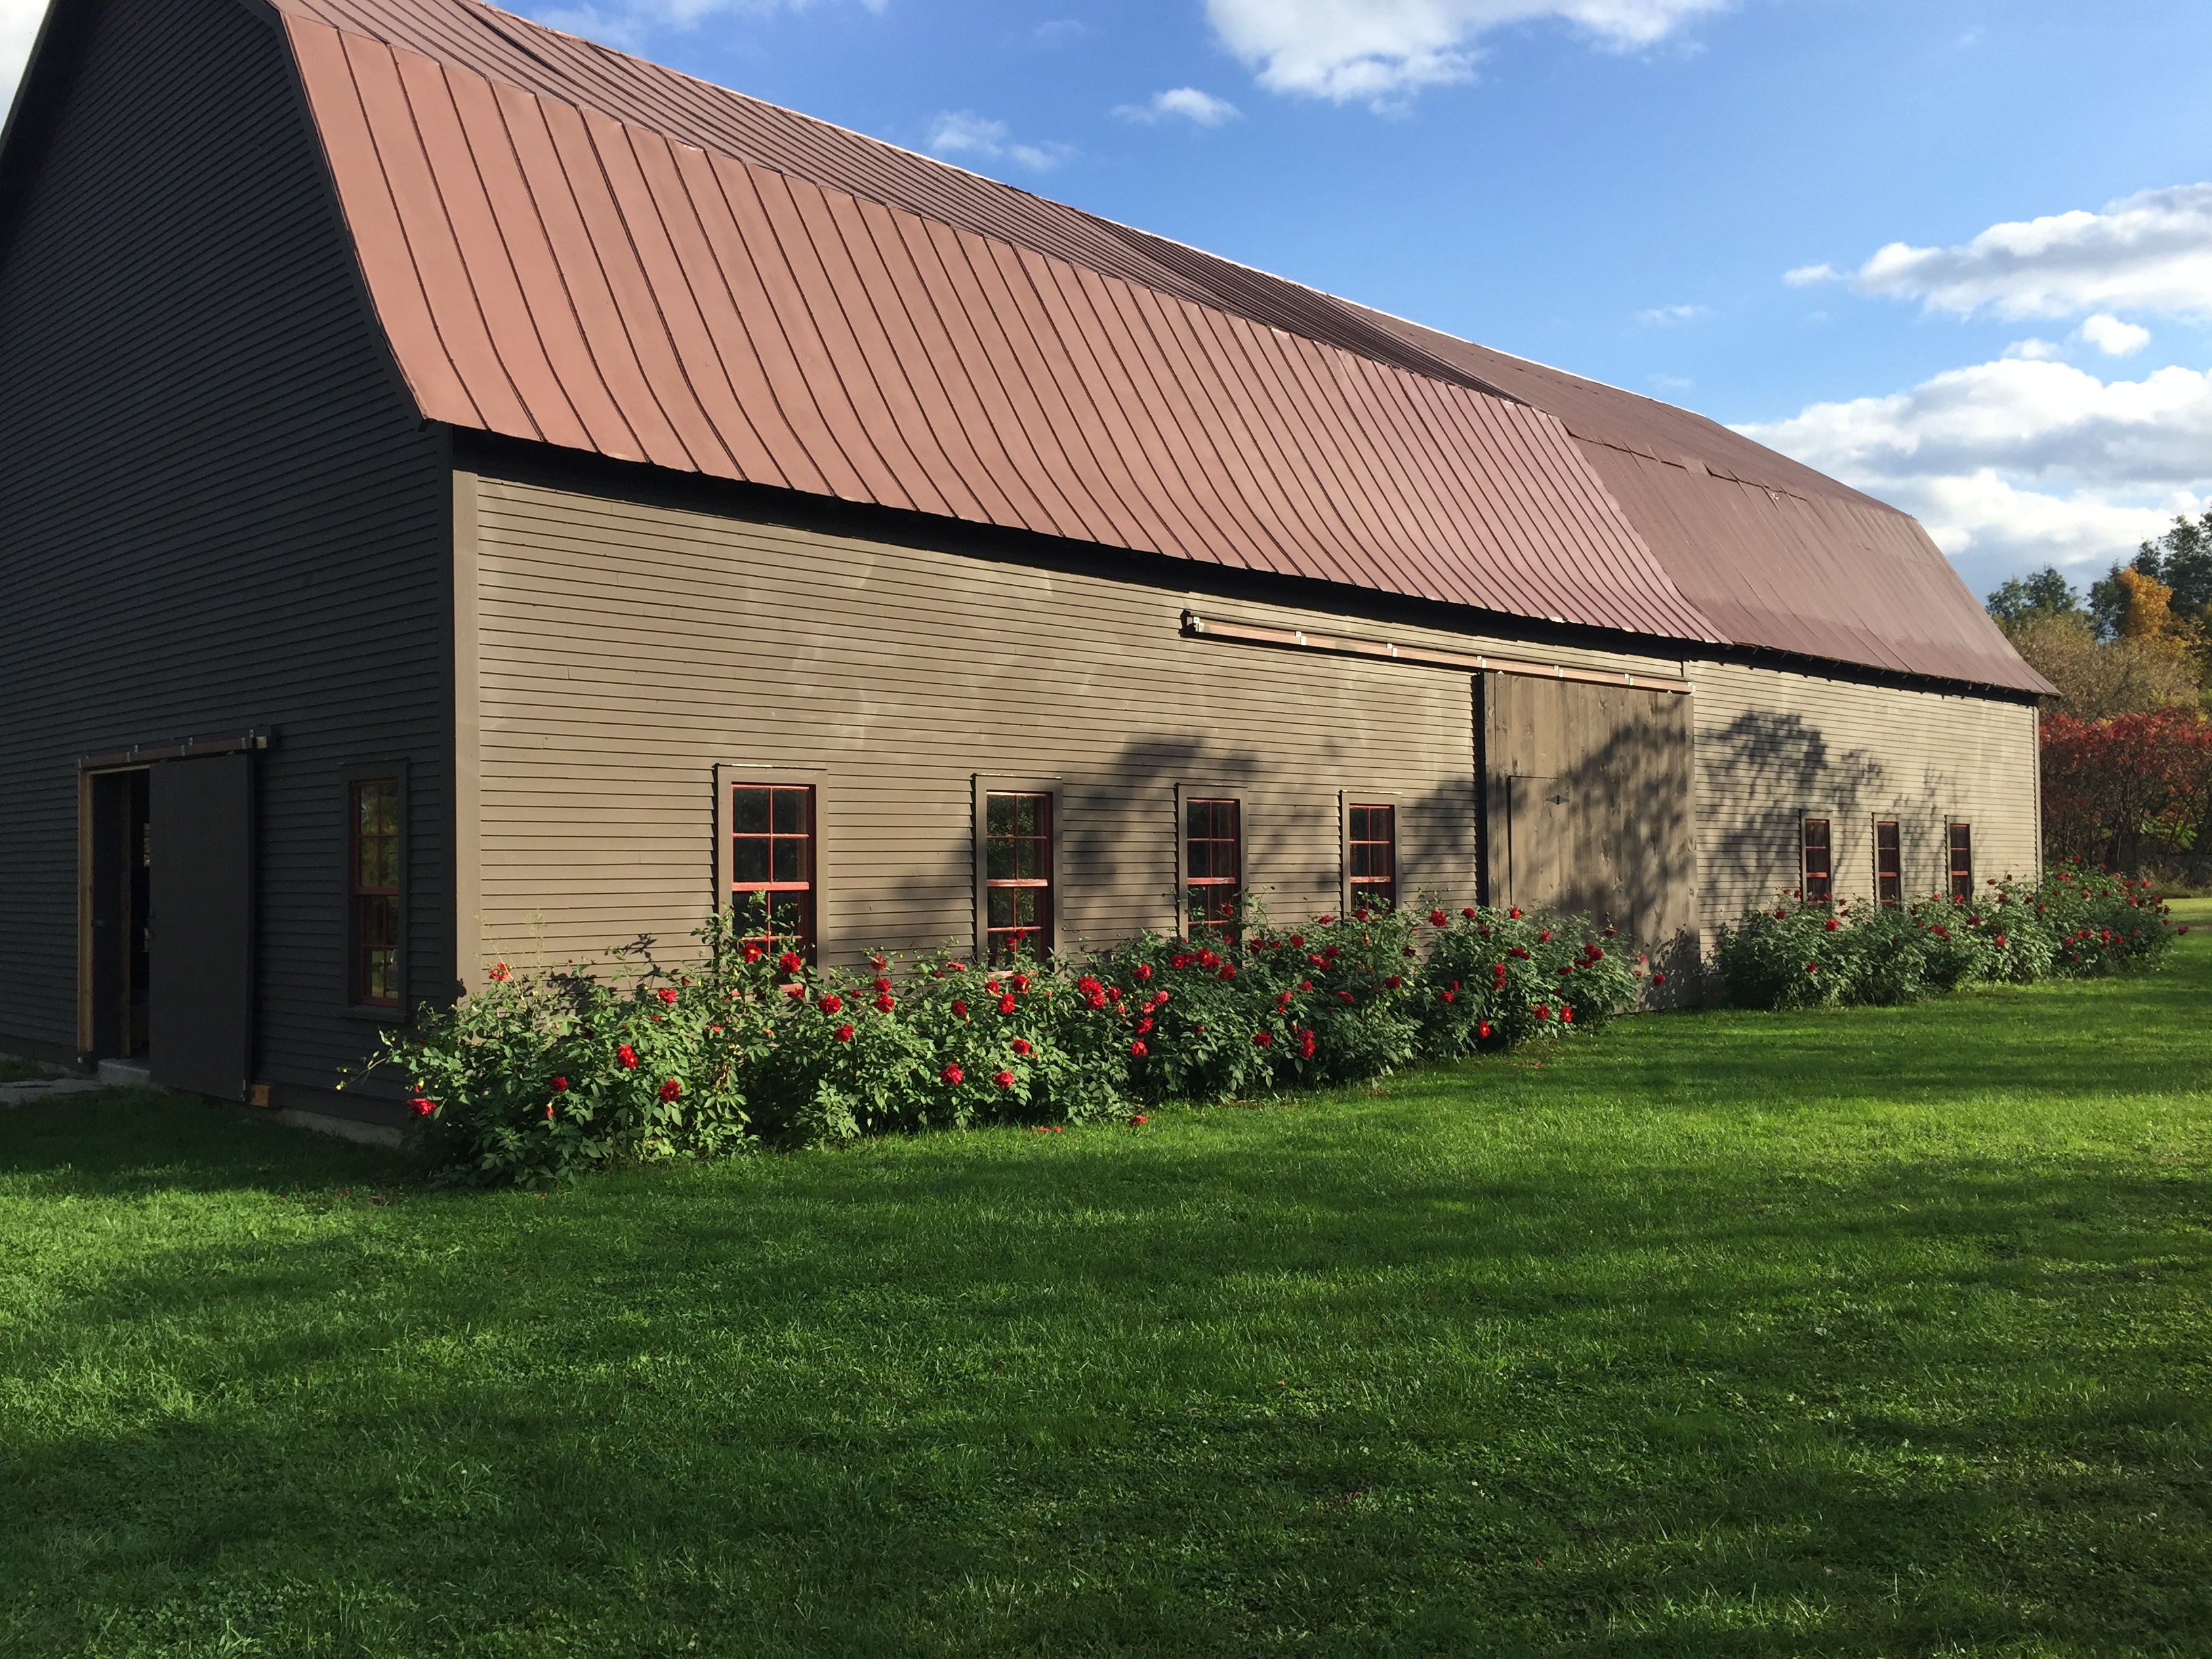 The Conservation Barn: Museum and Education Center